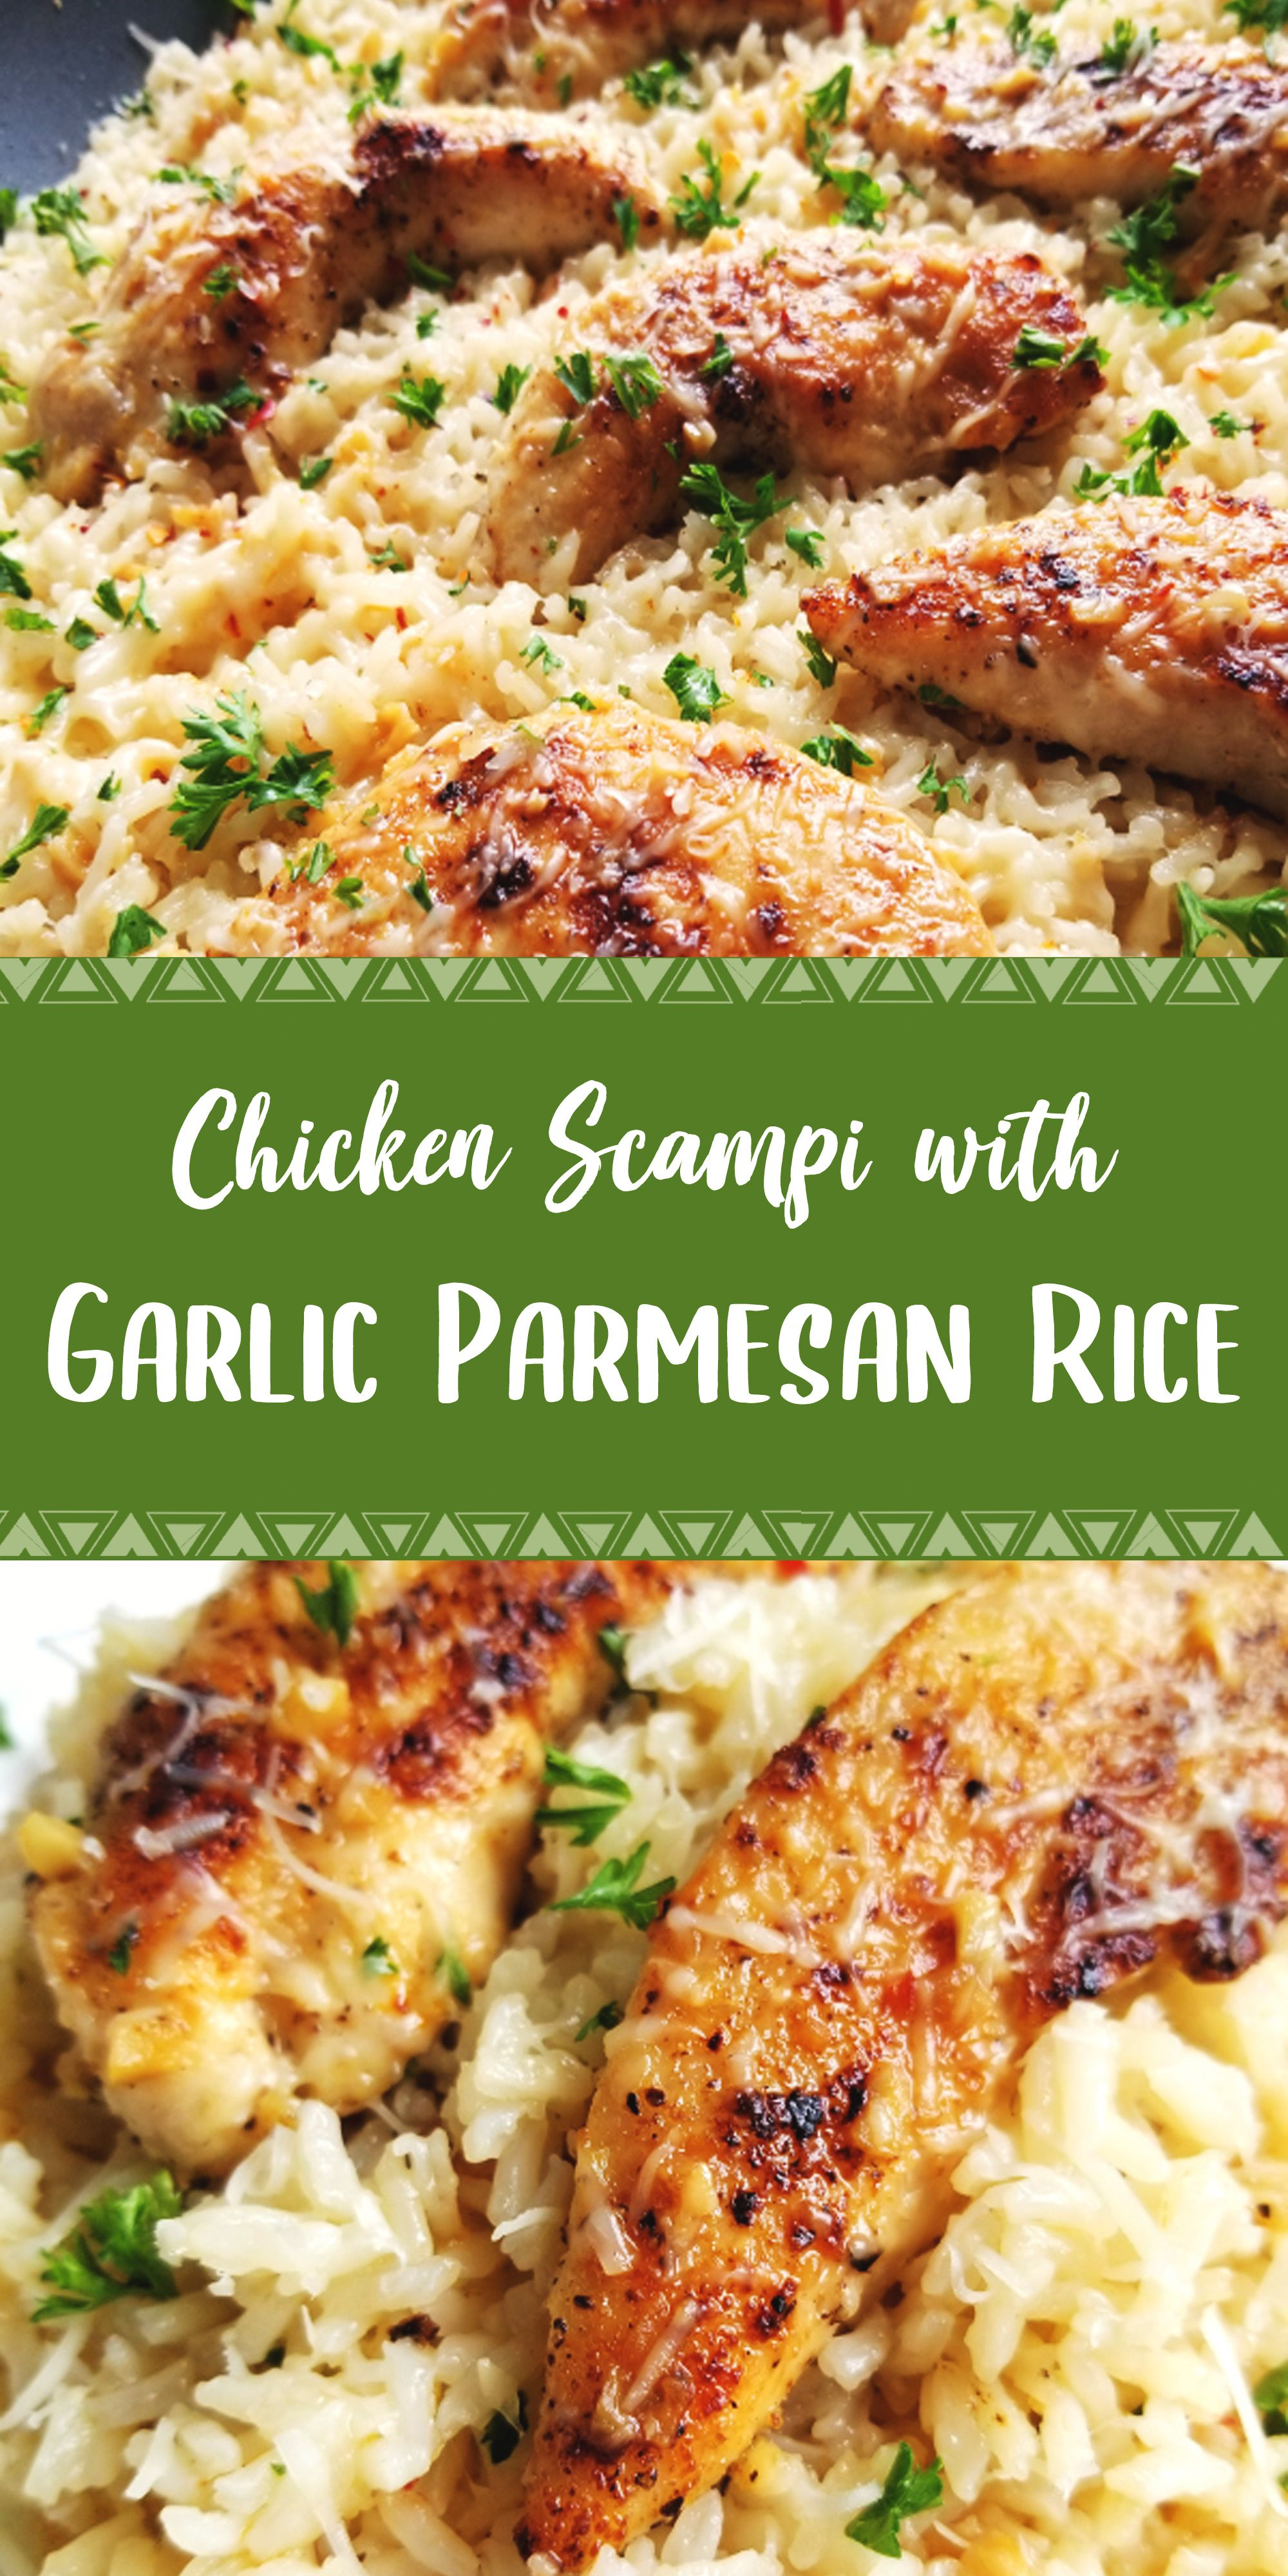 Photo of Chicken Scampi with Garlic Parmesan Rice